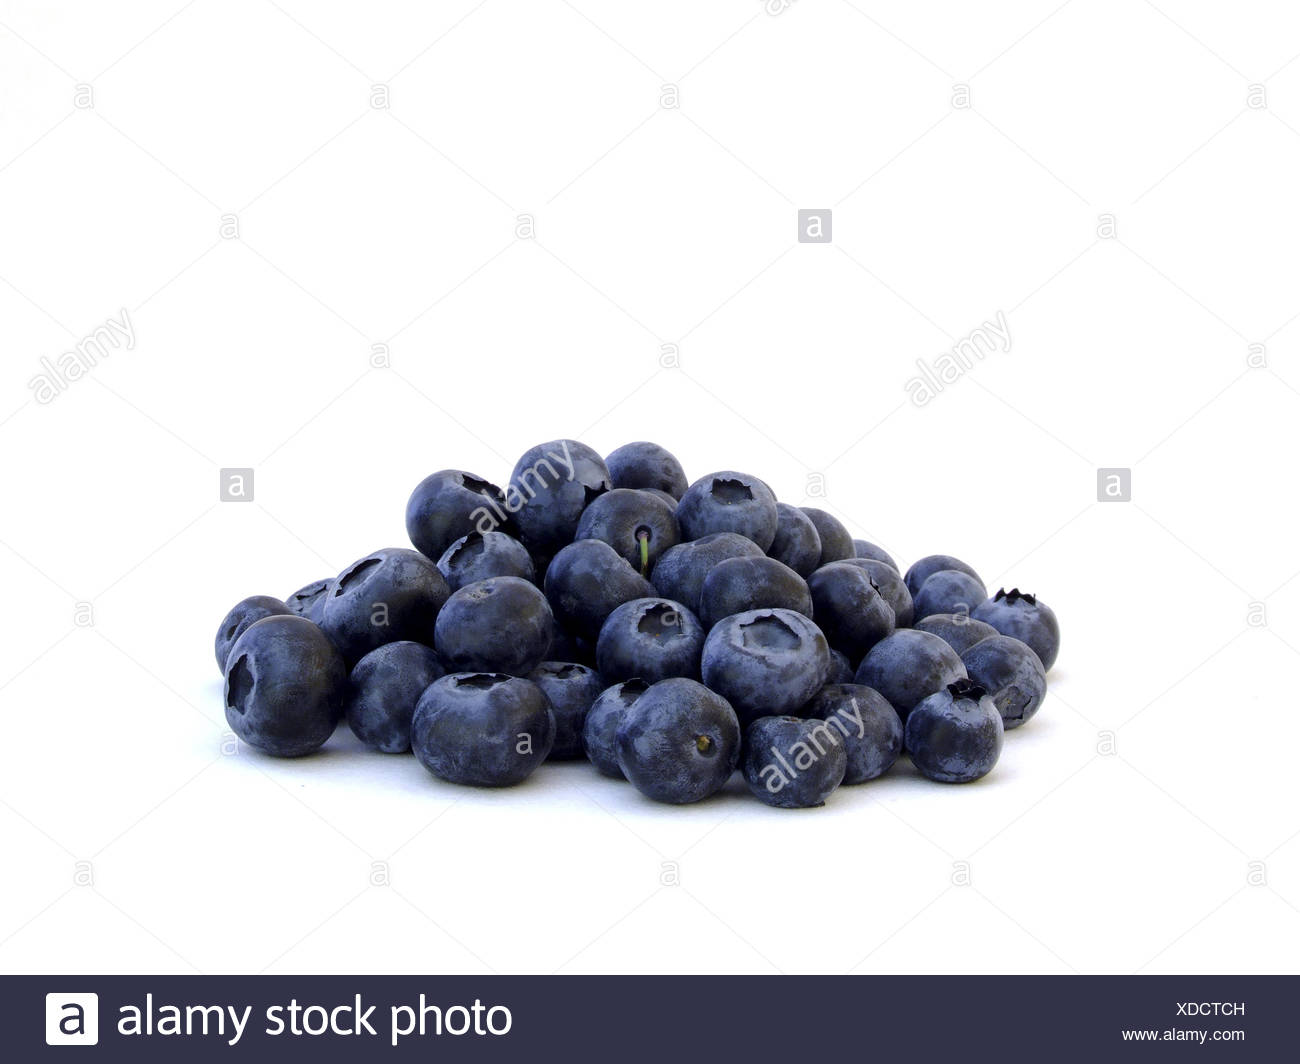 Heidelbeeren / blueberries - Stock Image